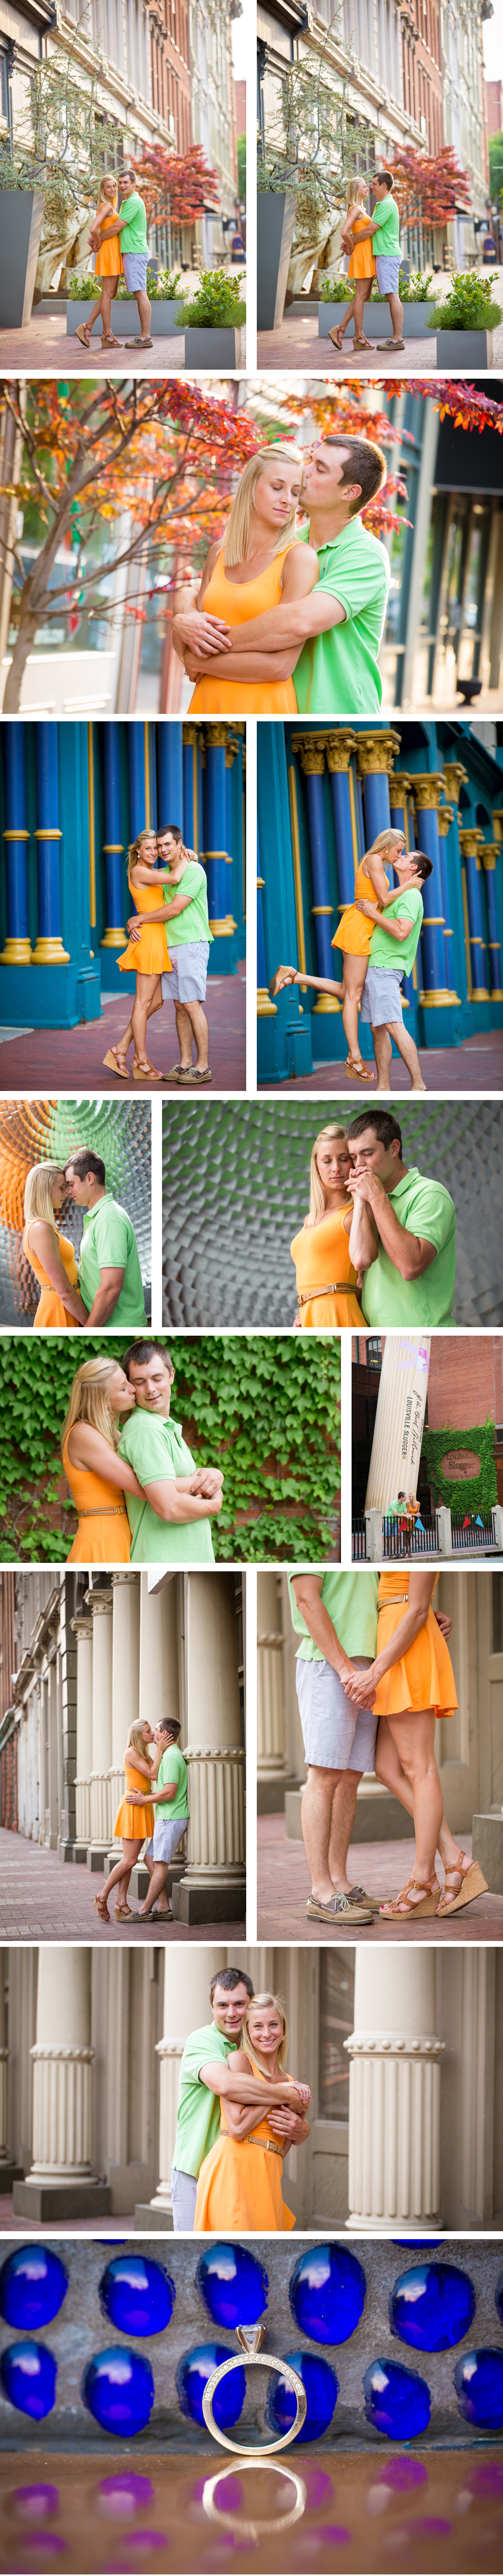 Louisville Downtown Engagement Photos eMotion image and video